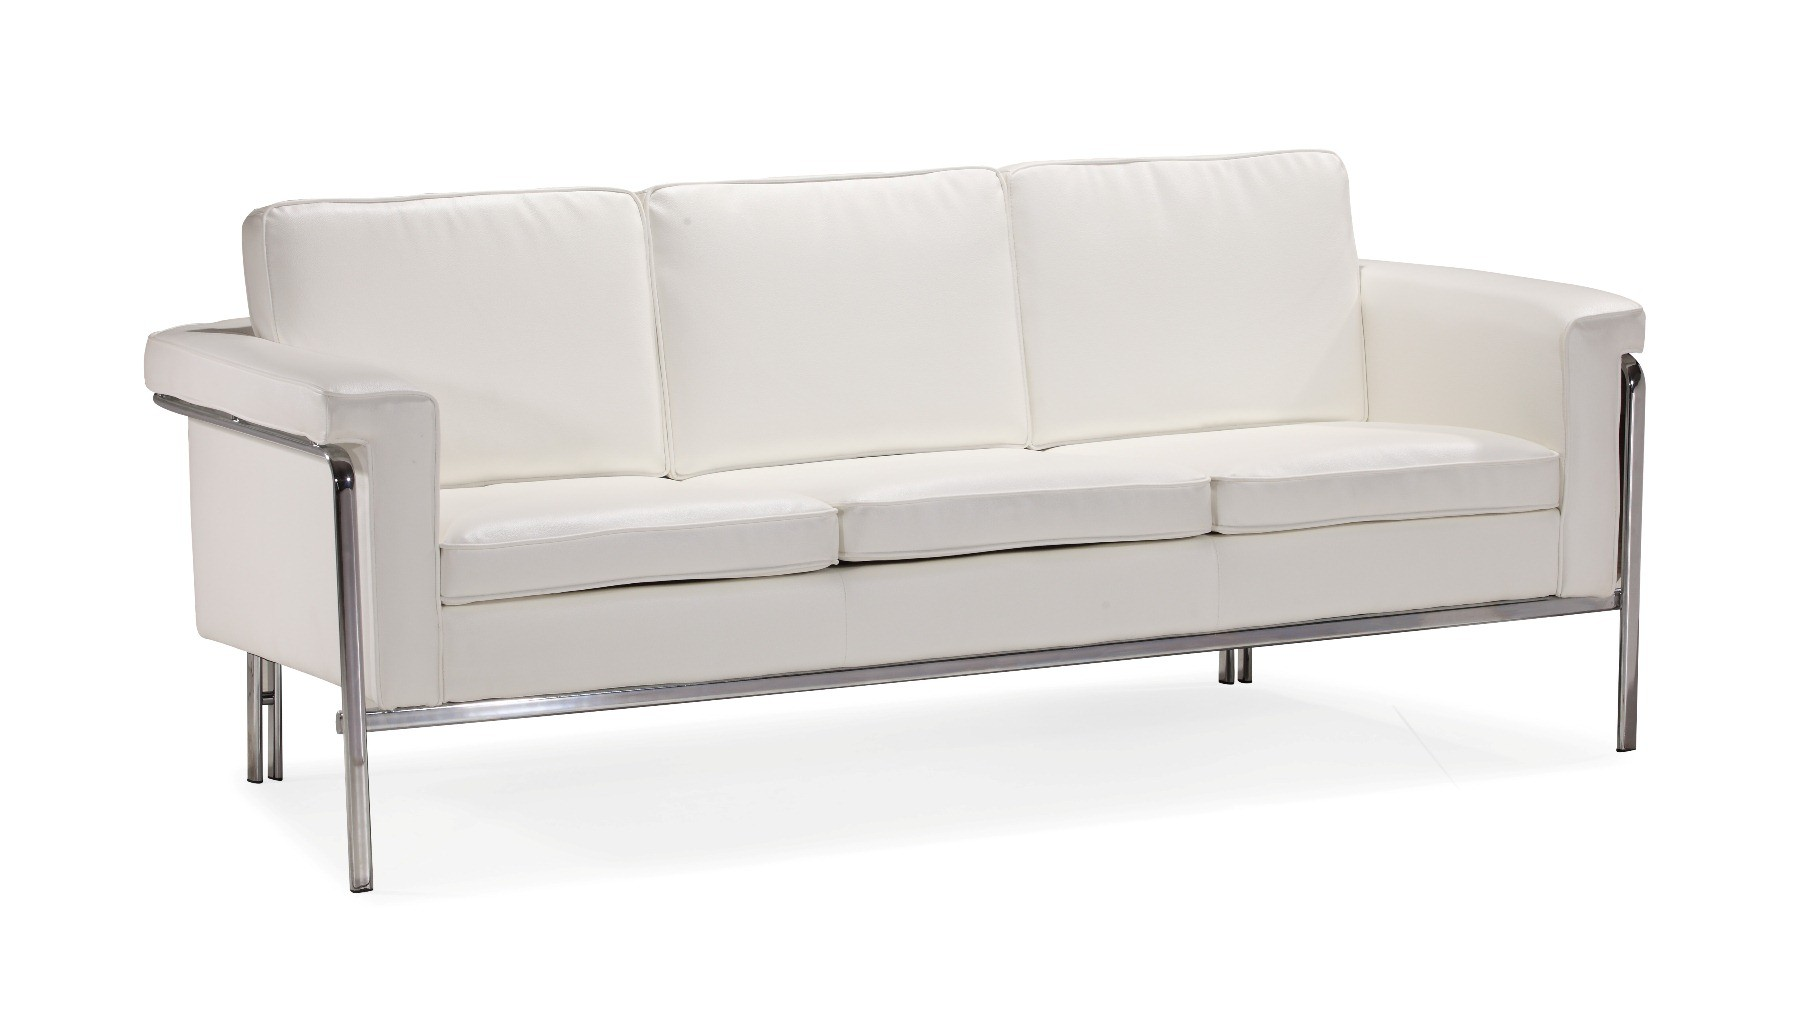 White Or Black Leather Contemporary Sofa With Chrome Legs And Frame